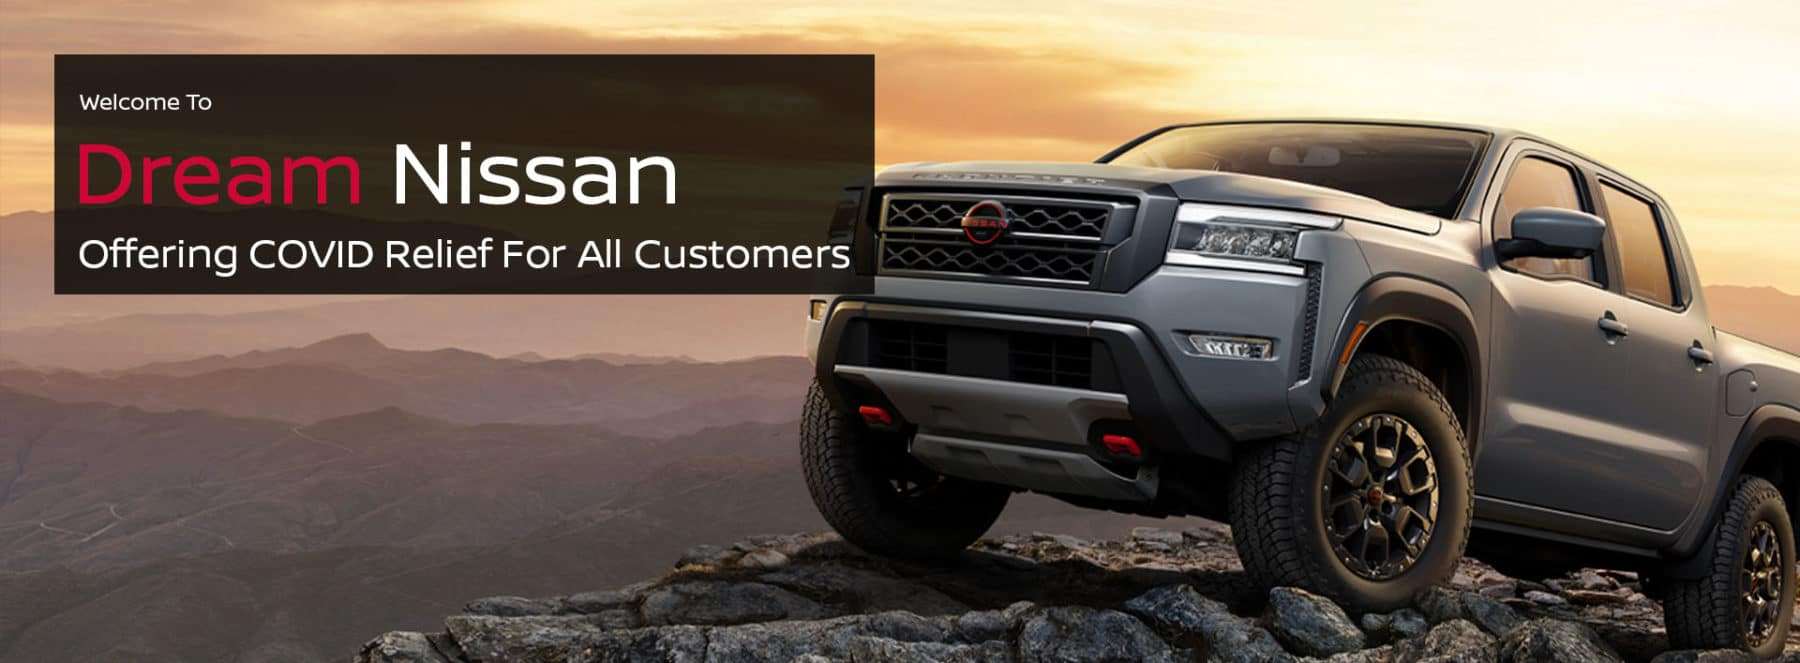 Dream Nissan Welcome Banner